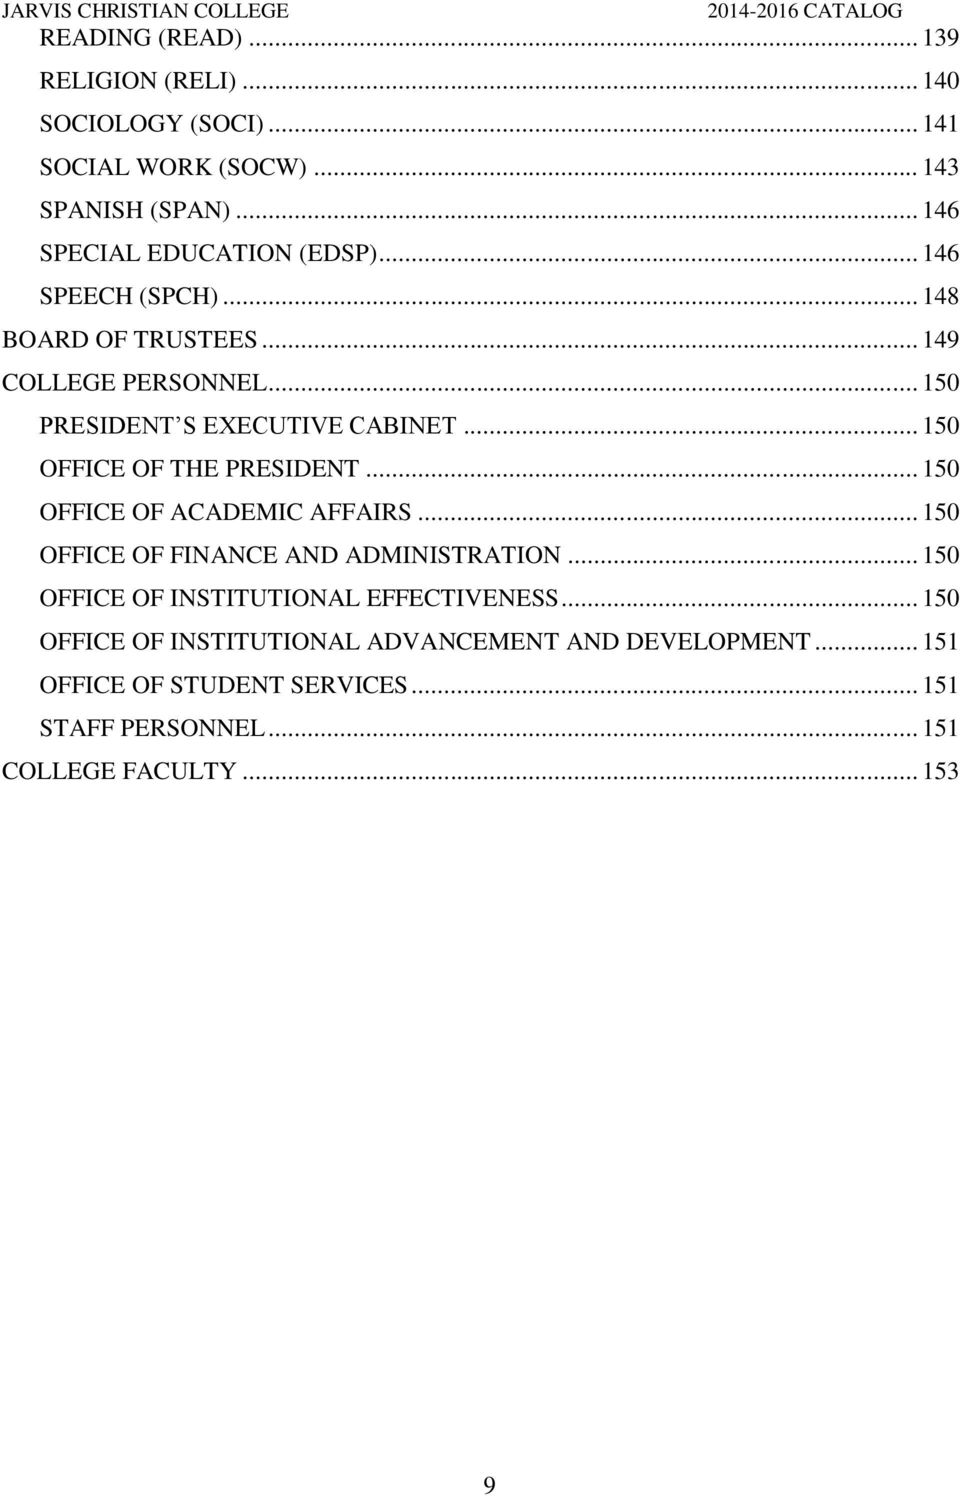 Jarvis christian college hawkins texas pdf - Office of institutional effectiveness ...